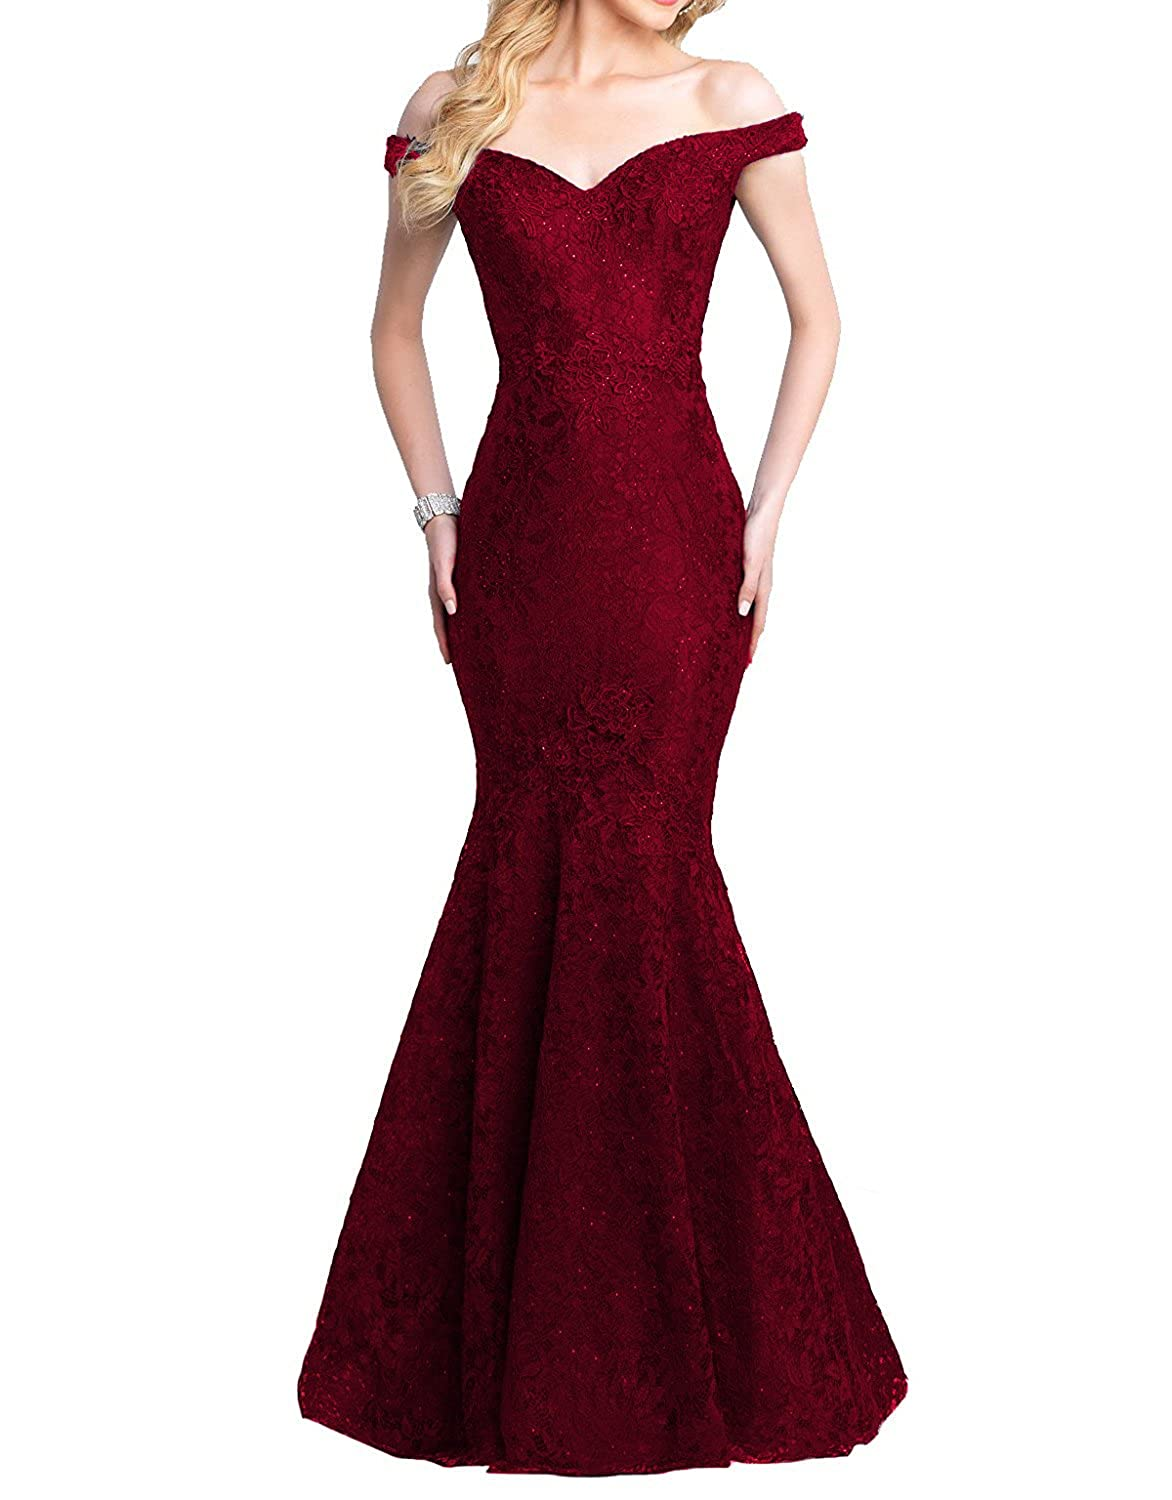 Dark Burgundy Yiweir Women's Mermaid Prom Dresses 2018 Long Lace Beads Sequins Formal Gowns YP039